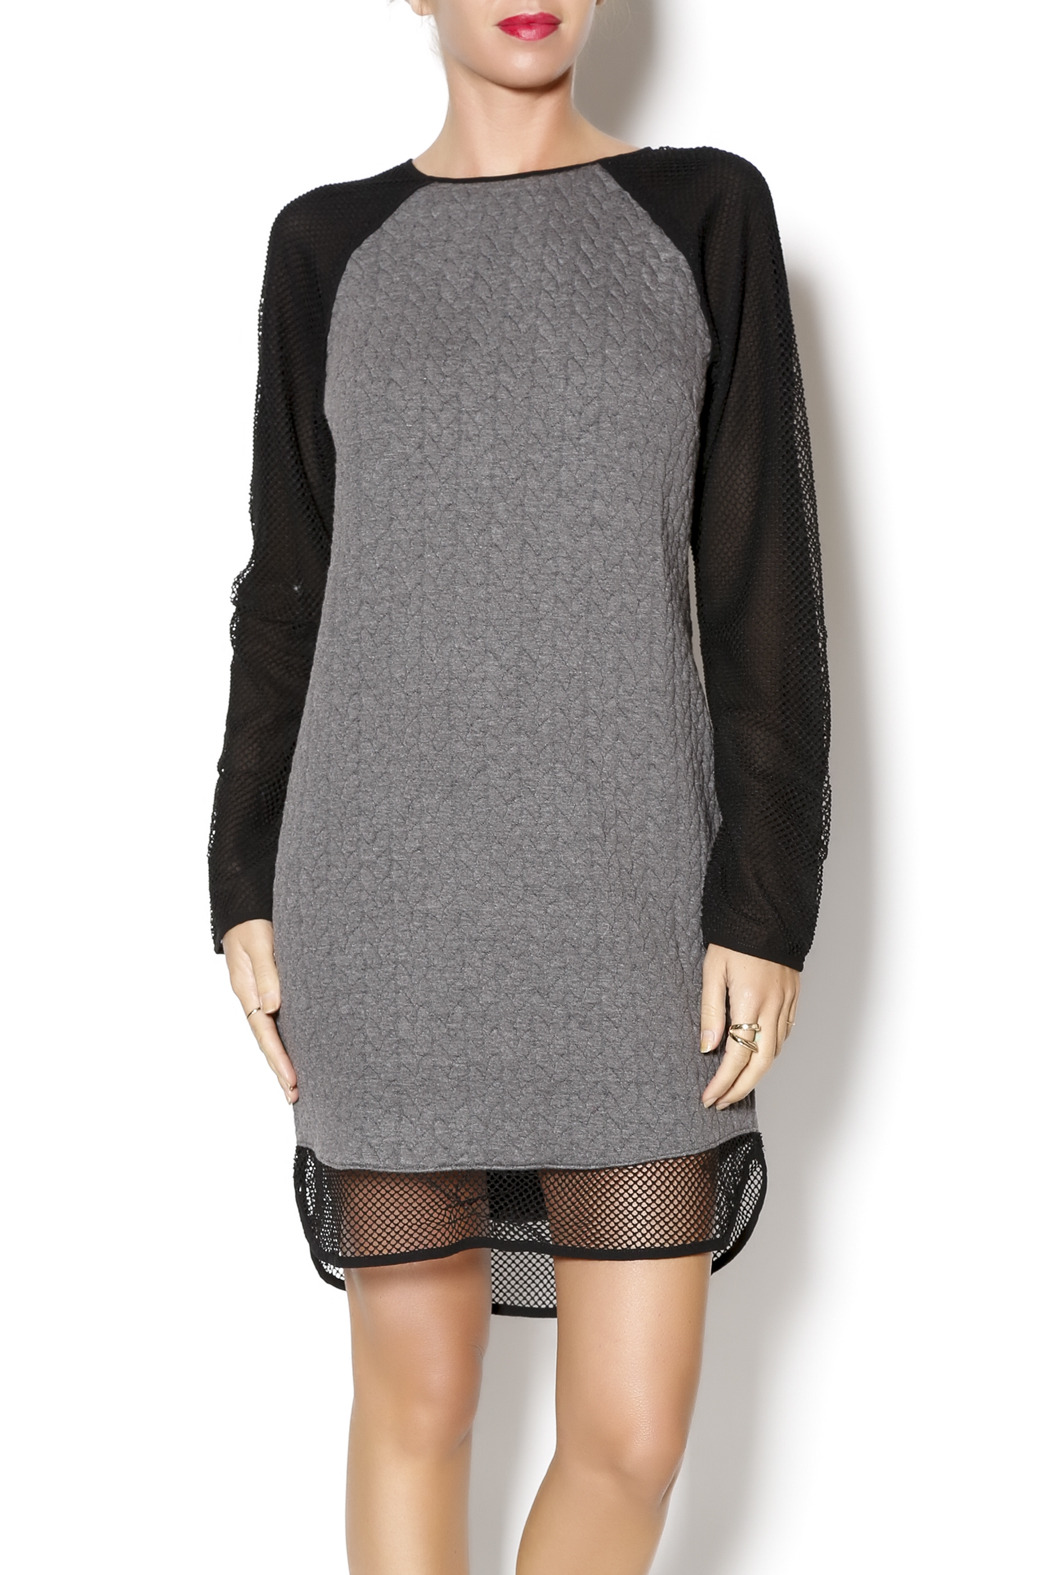 Greylin Jasper Textured Dress - Front Cropped Image